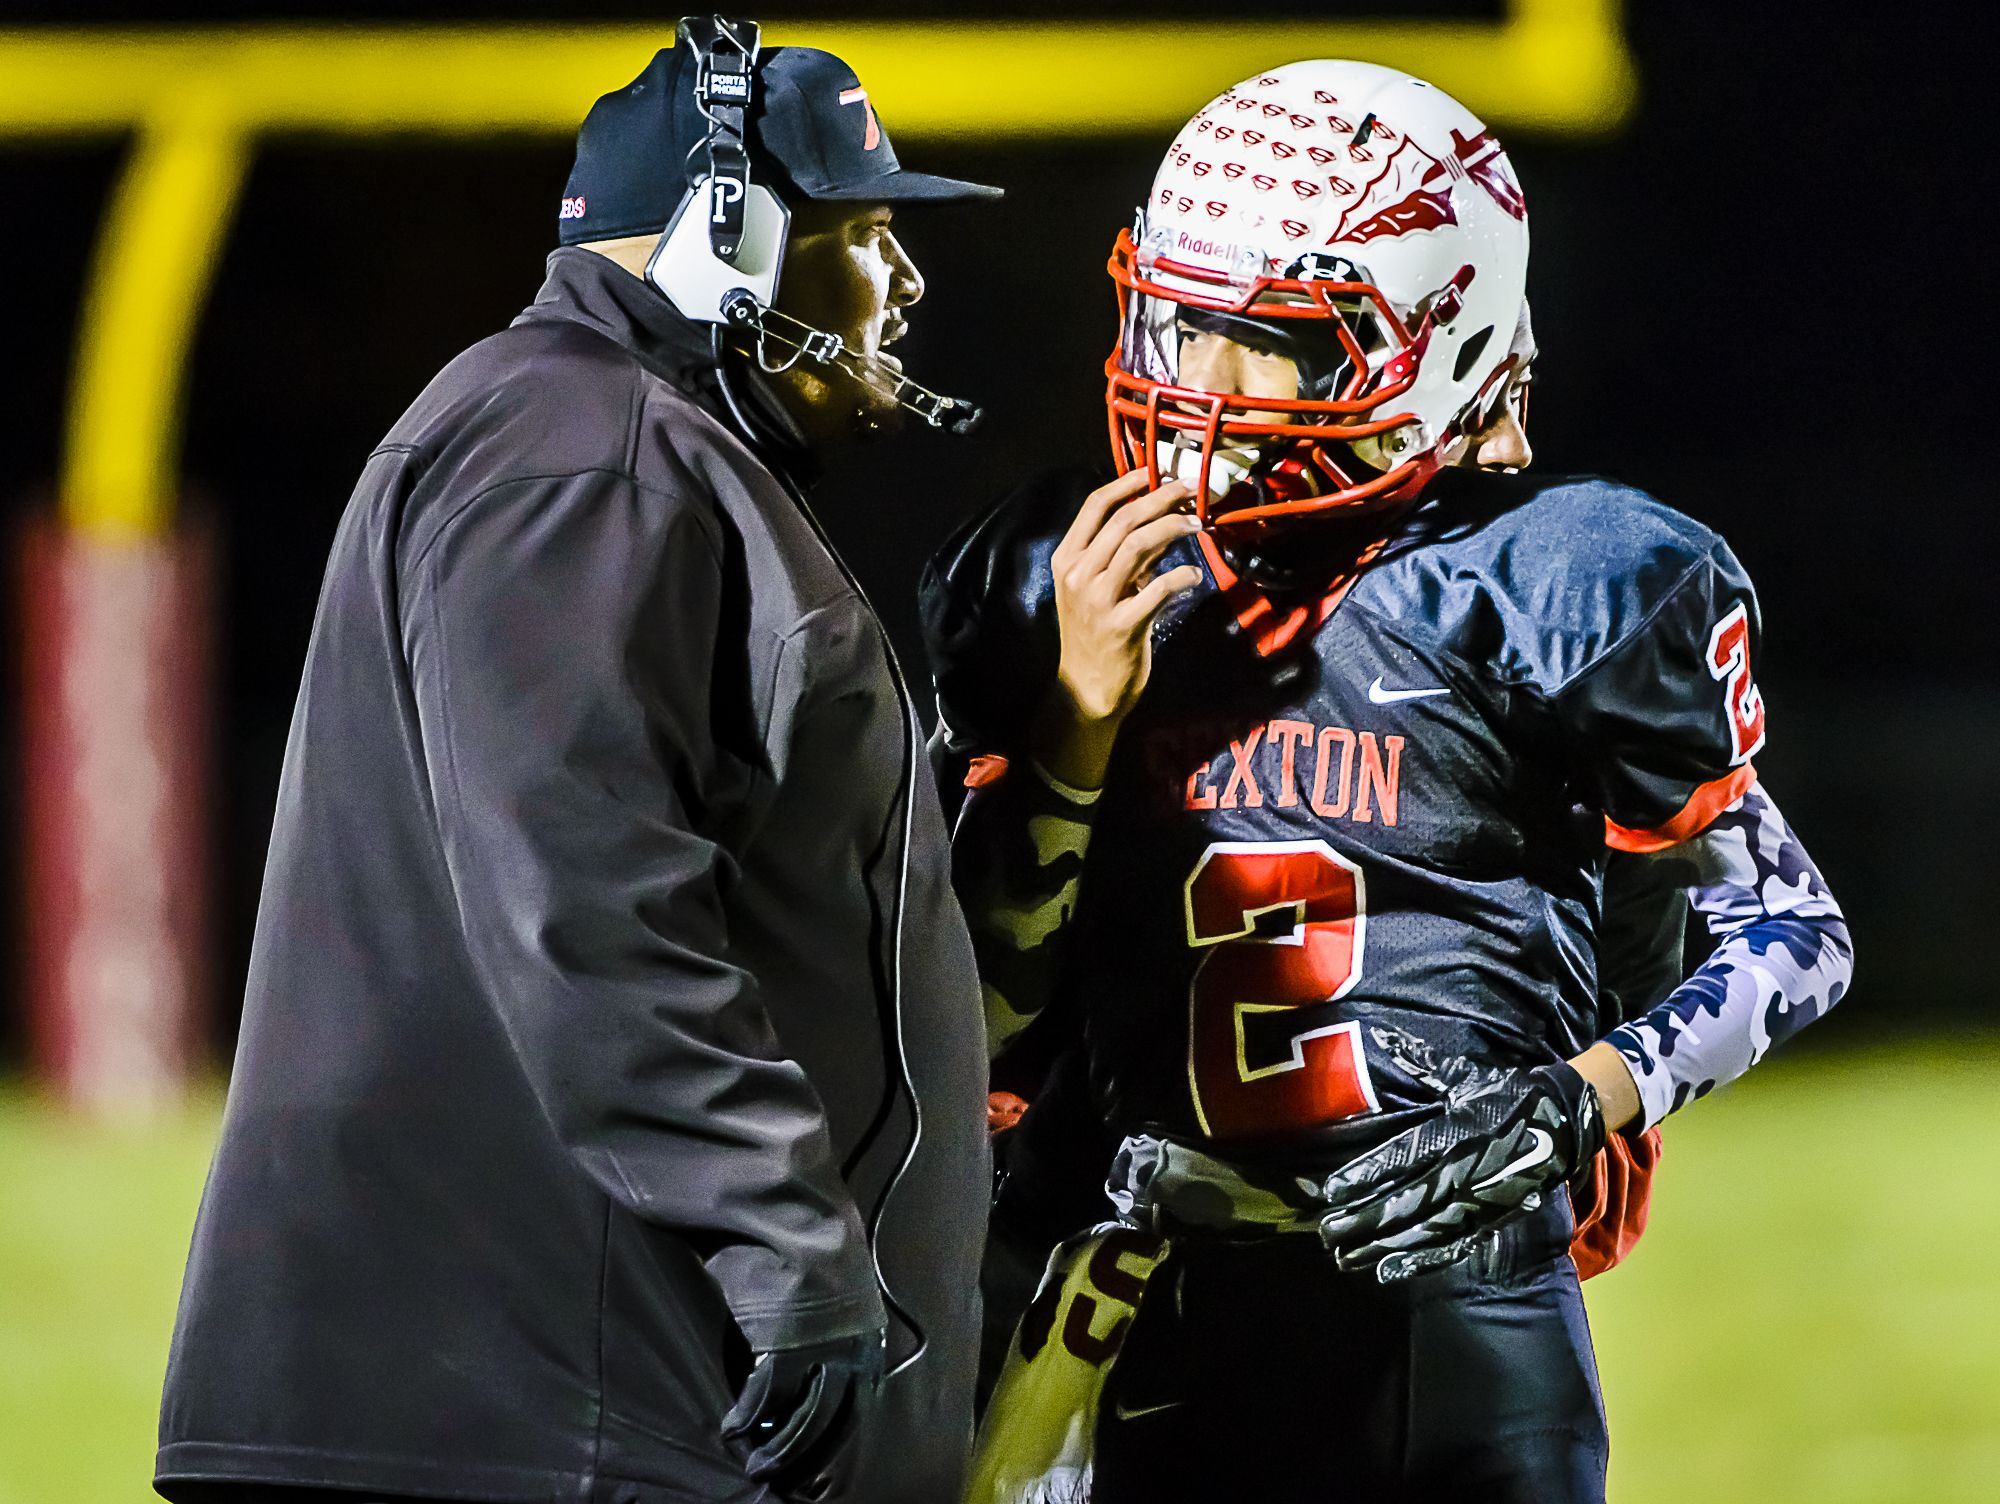 Sexton coach Dan Boggan, shown talking with quarterback Jackson Barnes during a recent game, became the school's career wins leader last week.